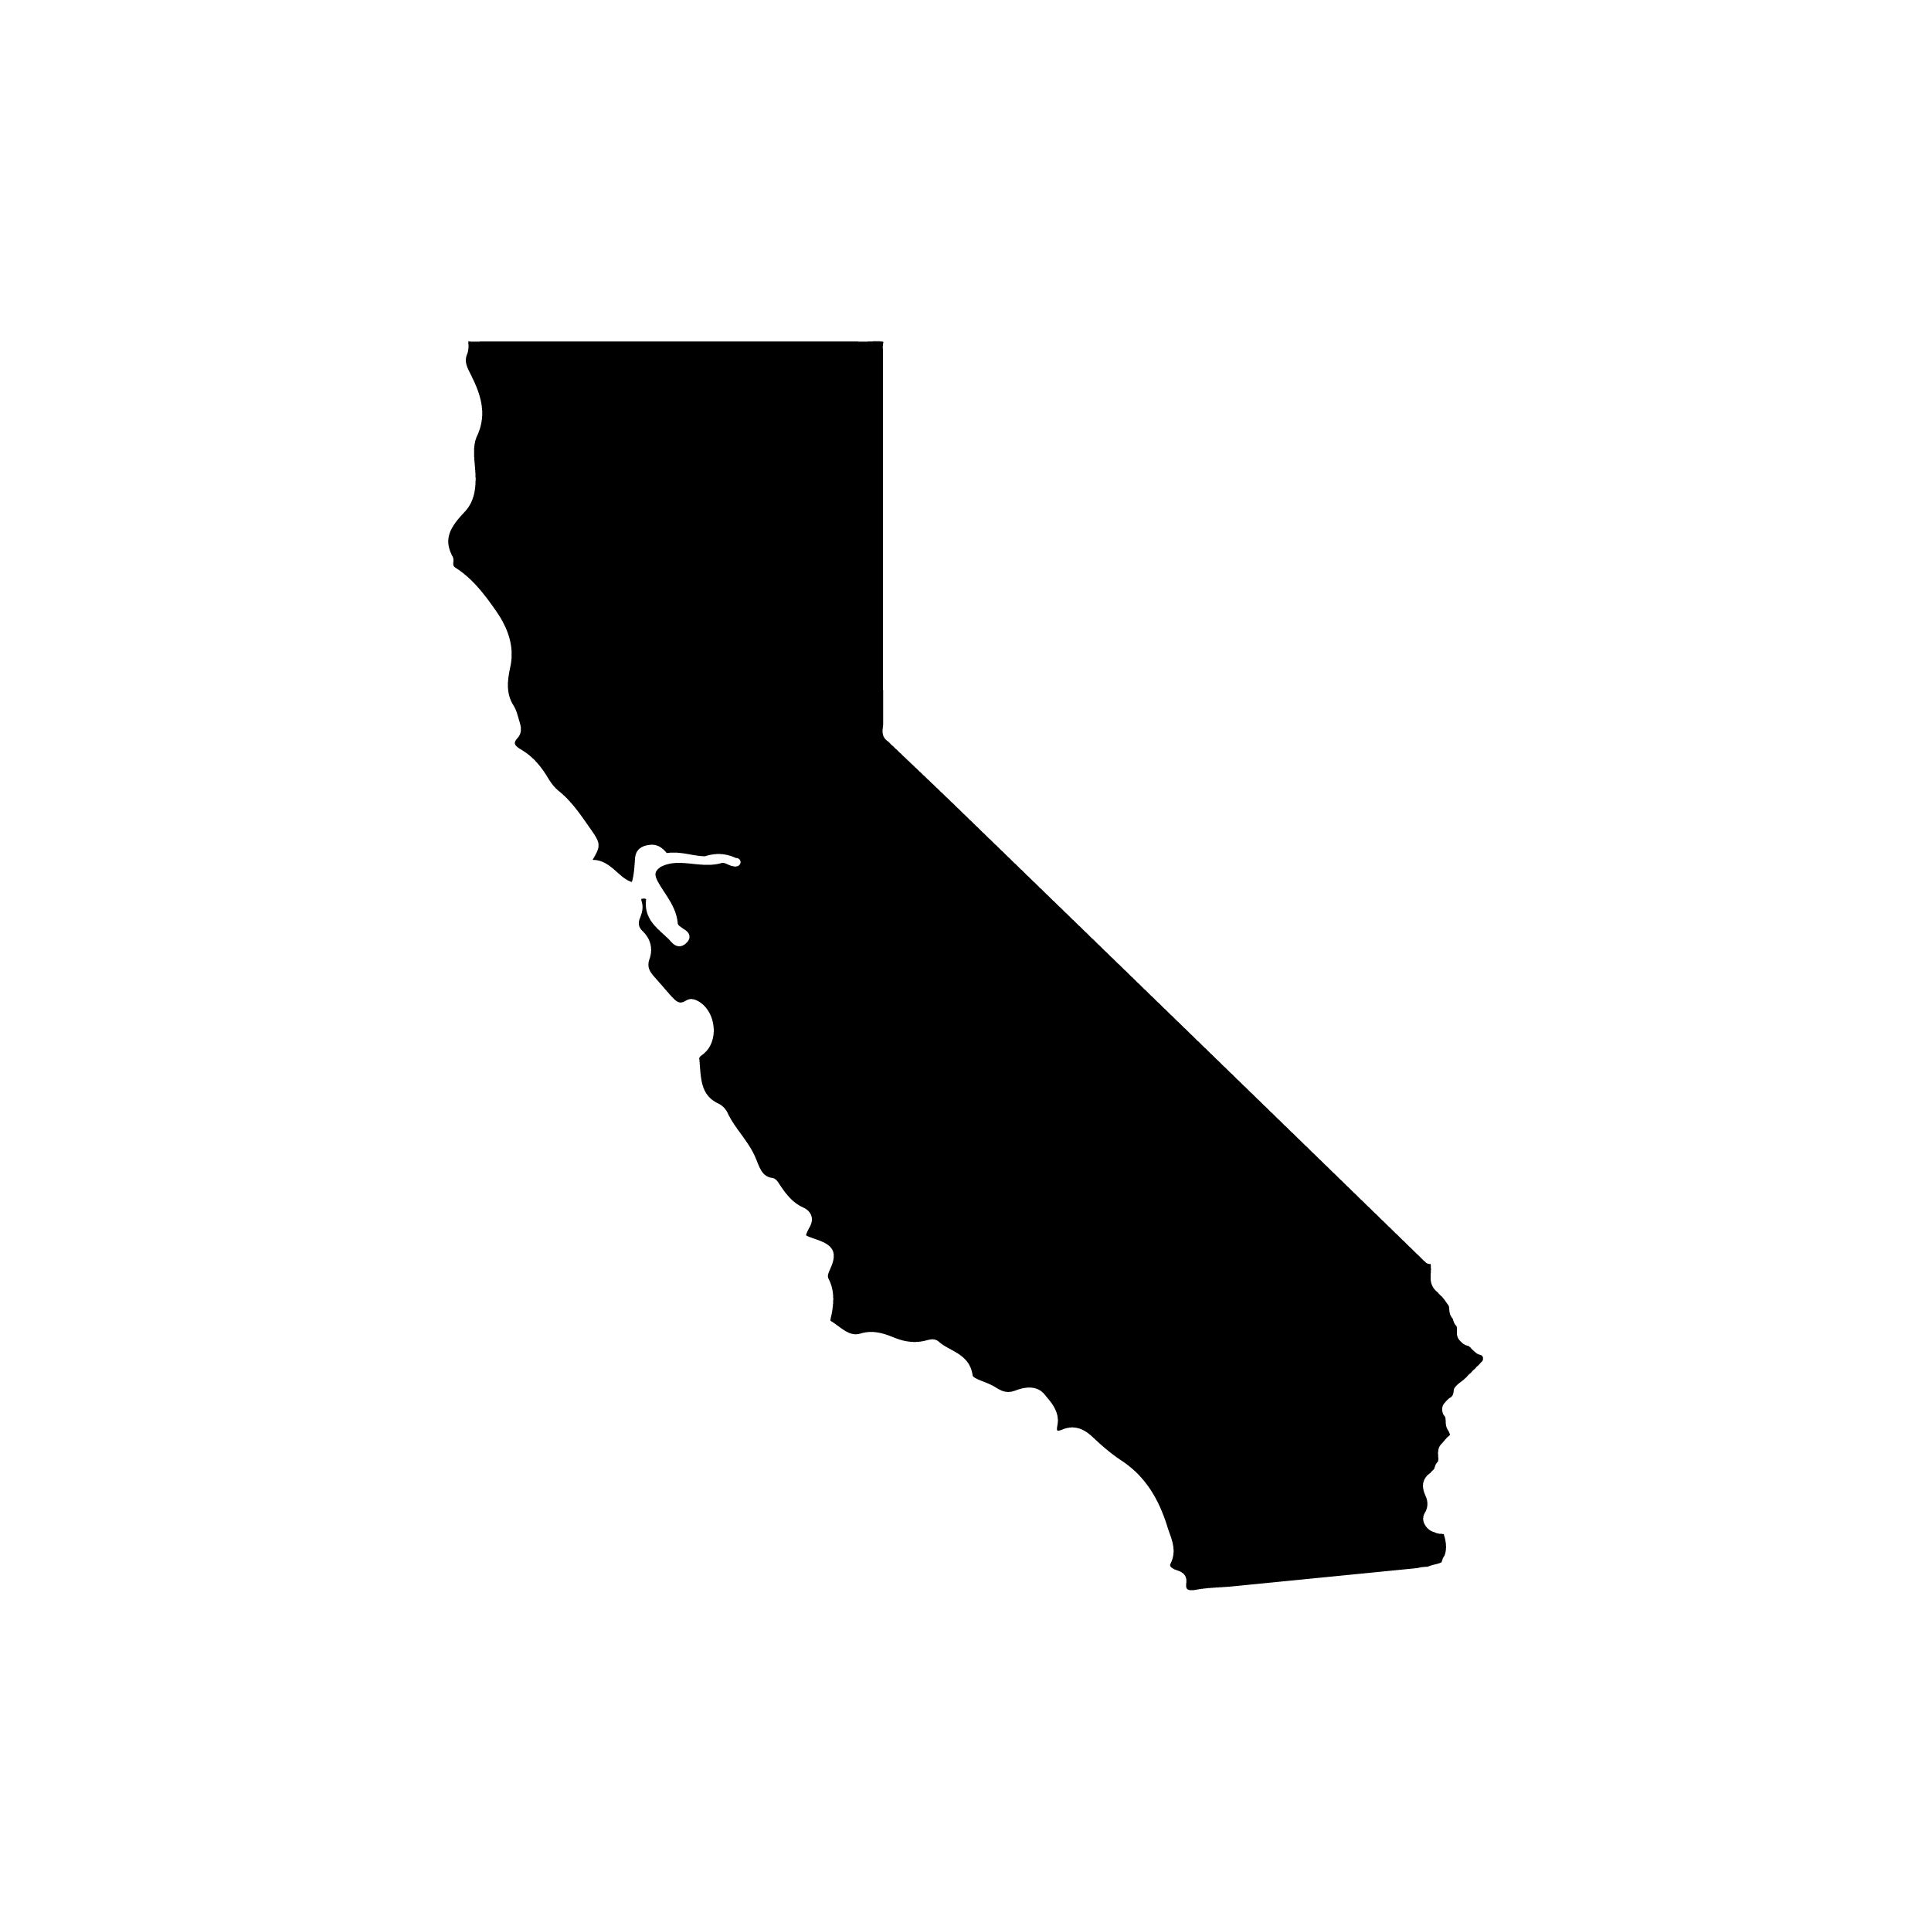 states-outlines-silhouette-vector [Converted]-01